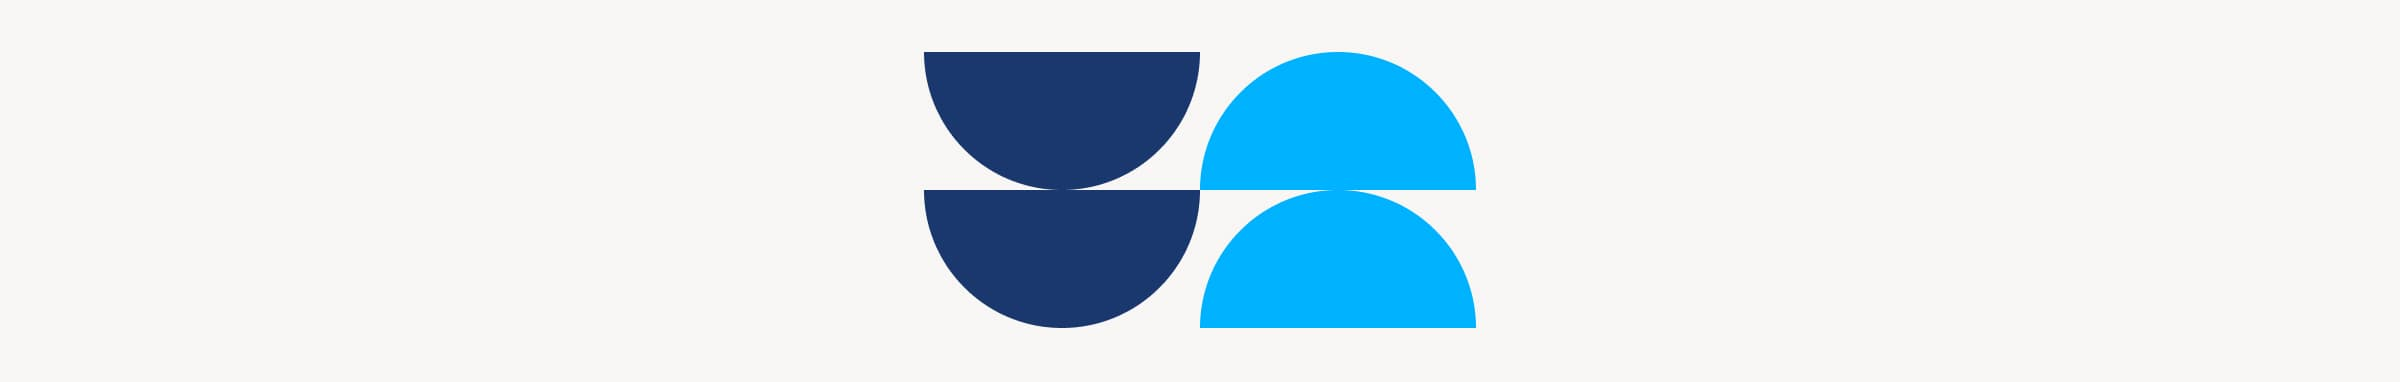 A brand design element, showing a graphic of four, blue-filled, half circles stacked on each other.